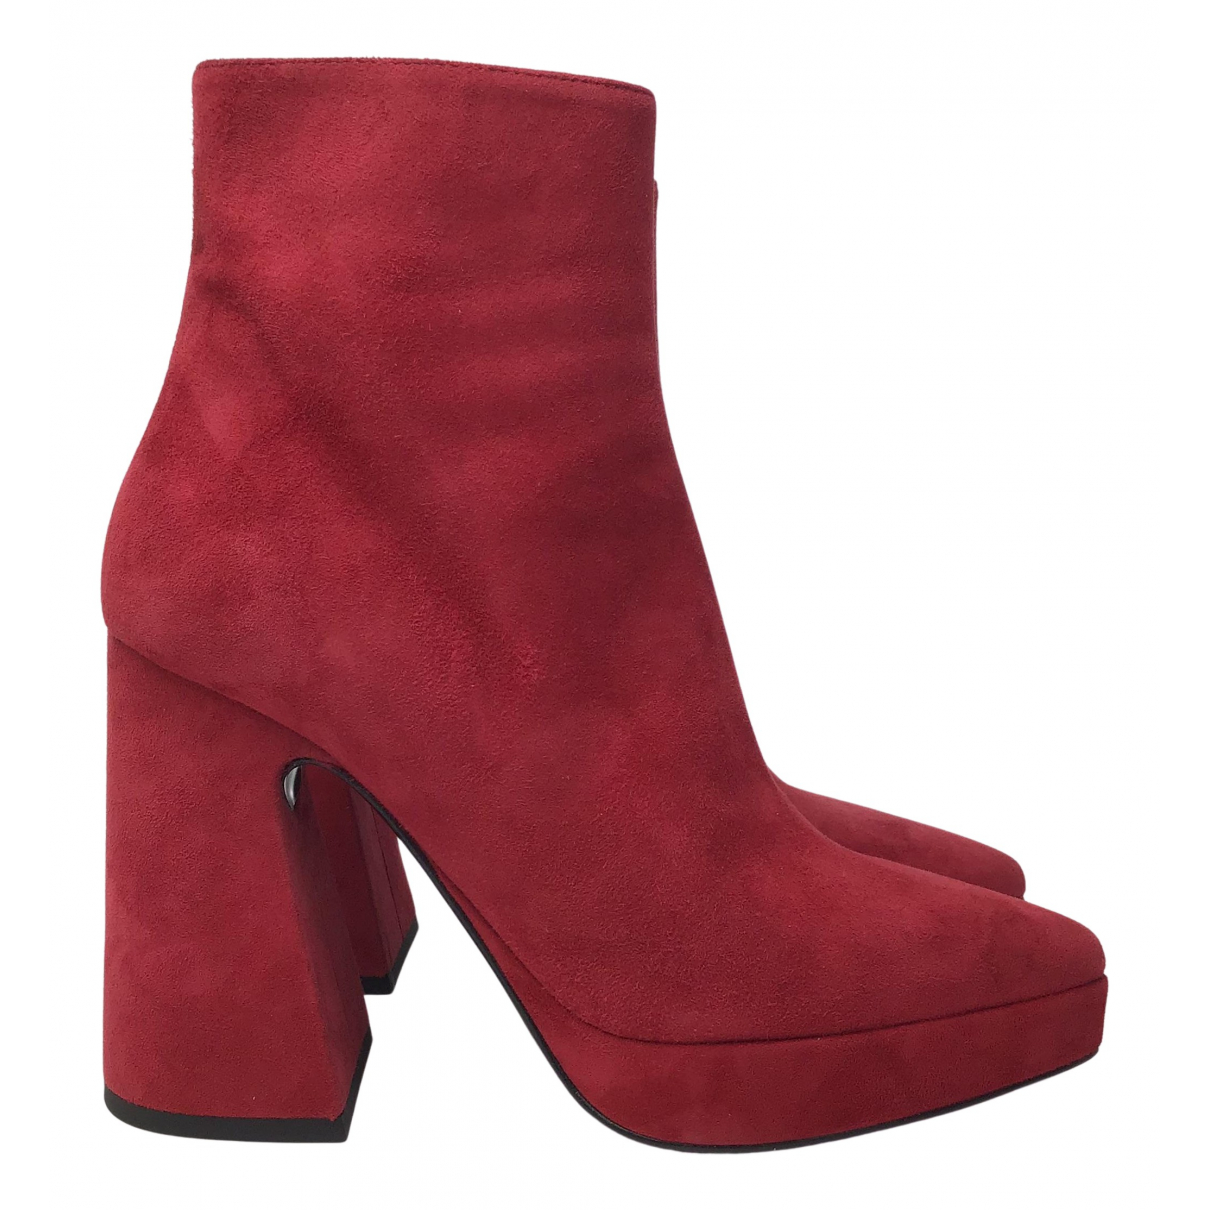 Proenza Schouler N Red Suede Ankle boots for Women 39.5 EU